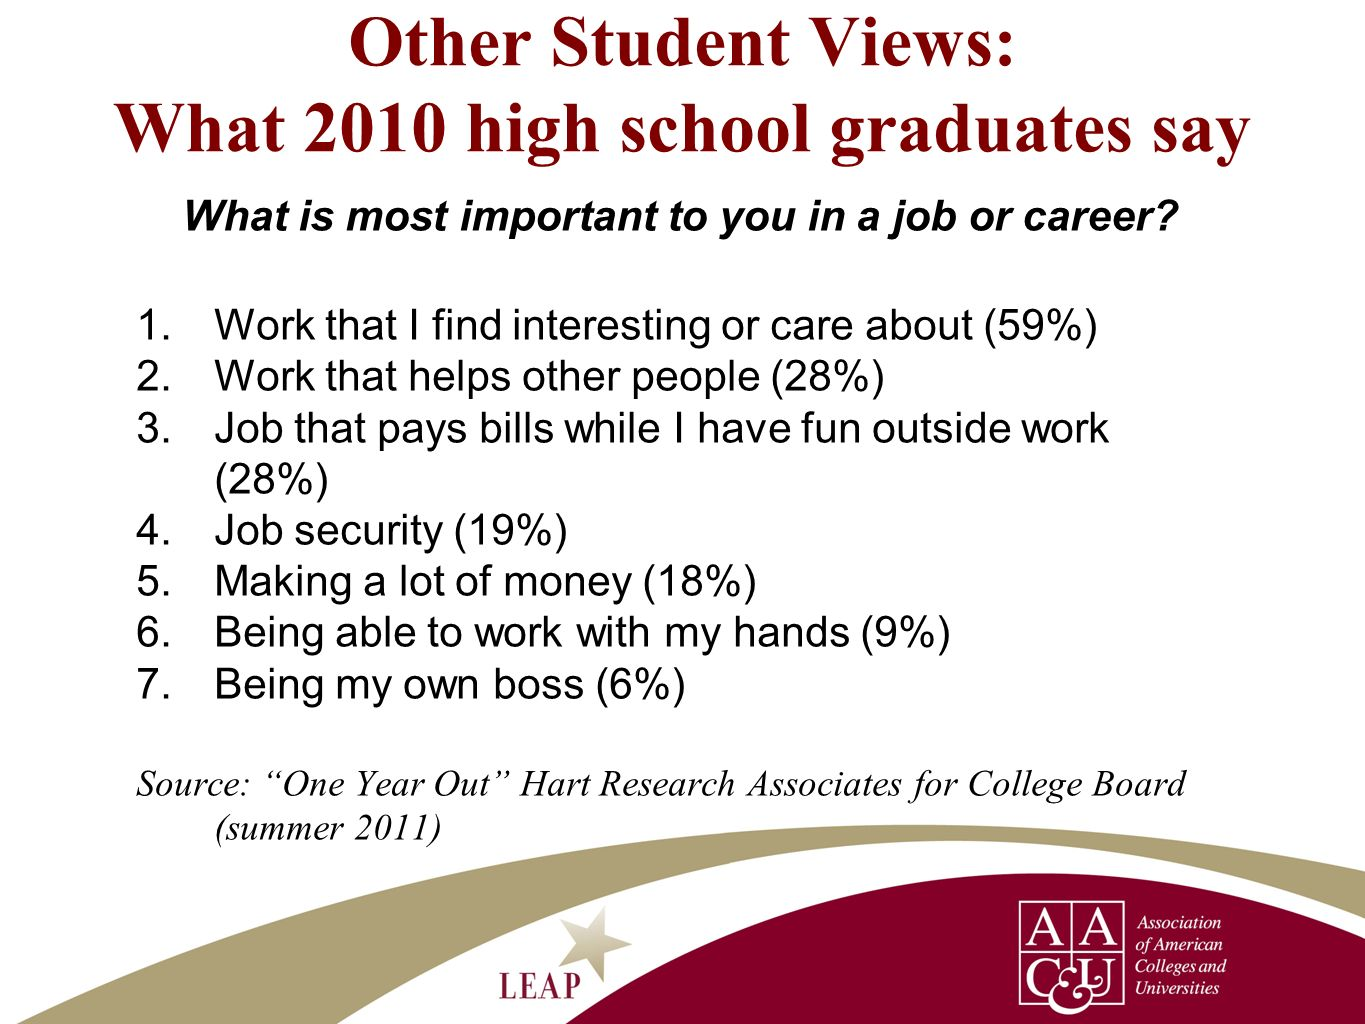 Other Student Views: What 2010 high school graduates say